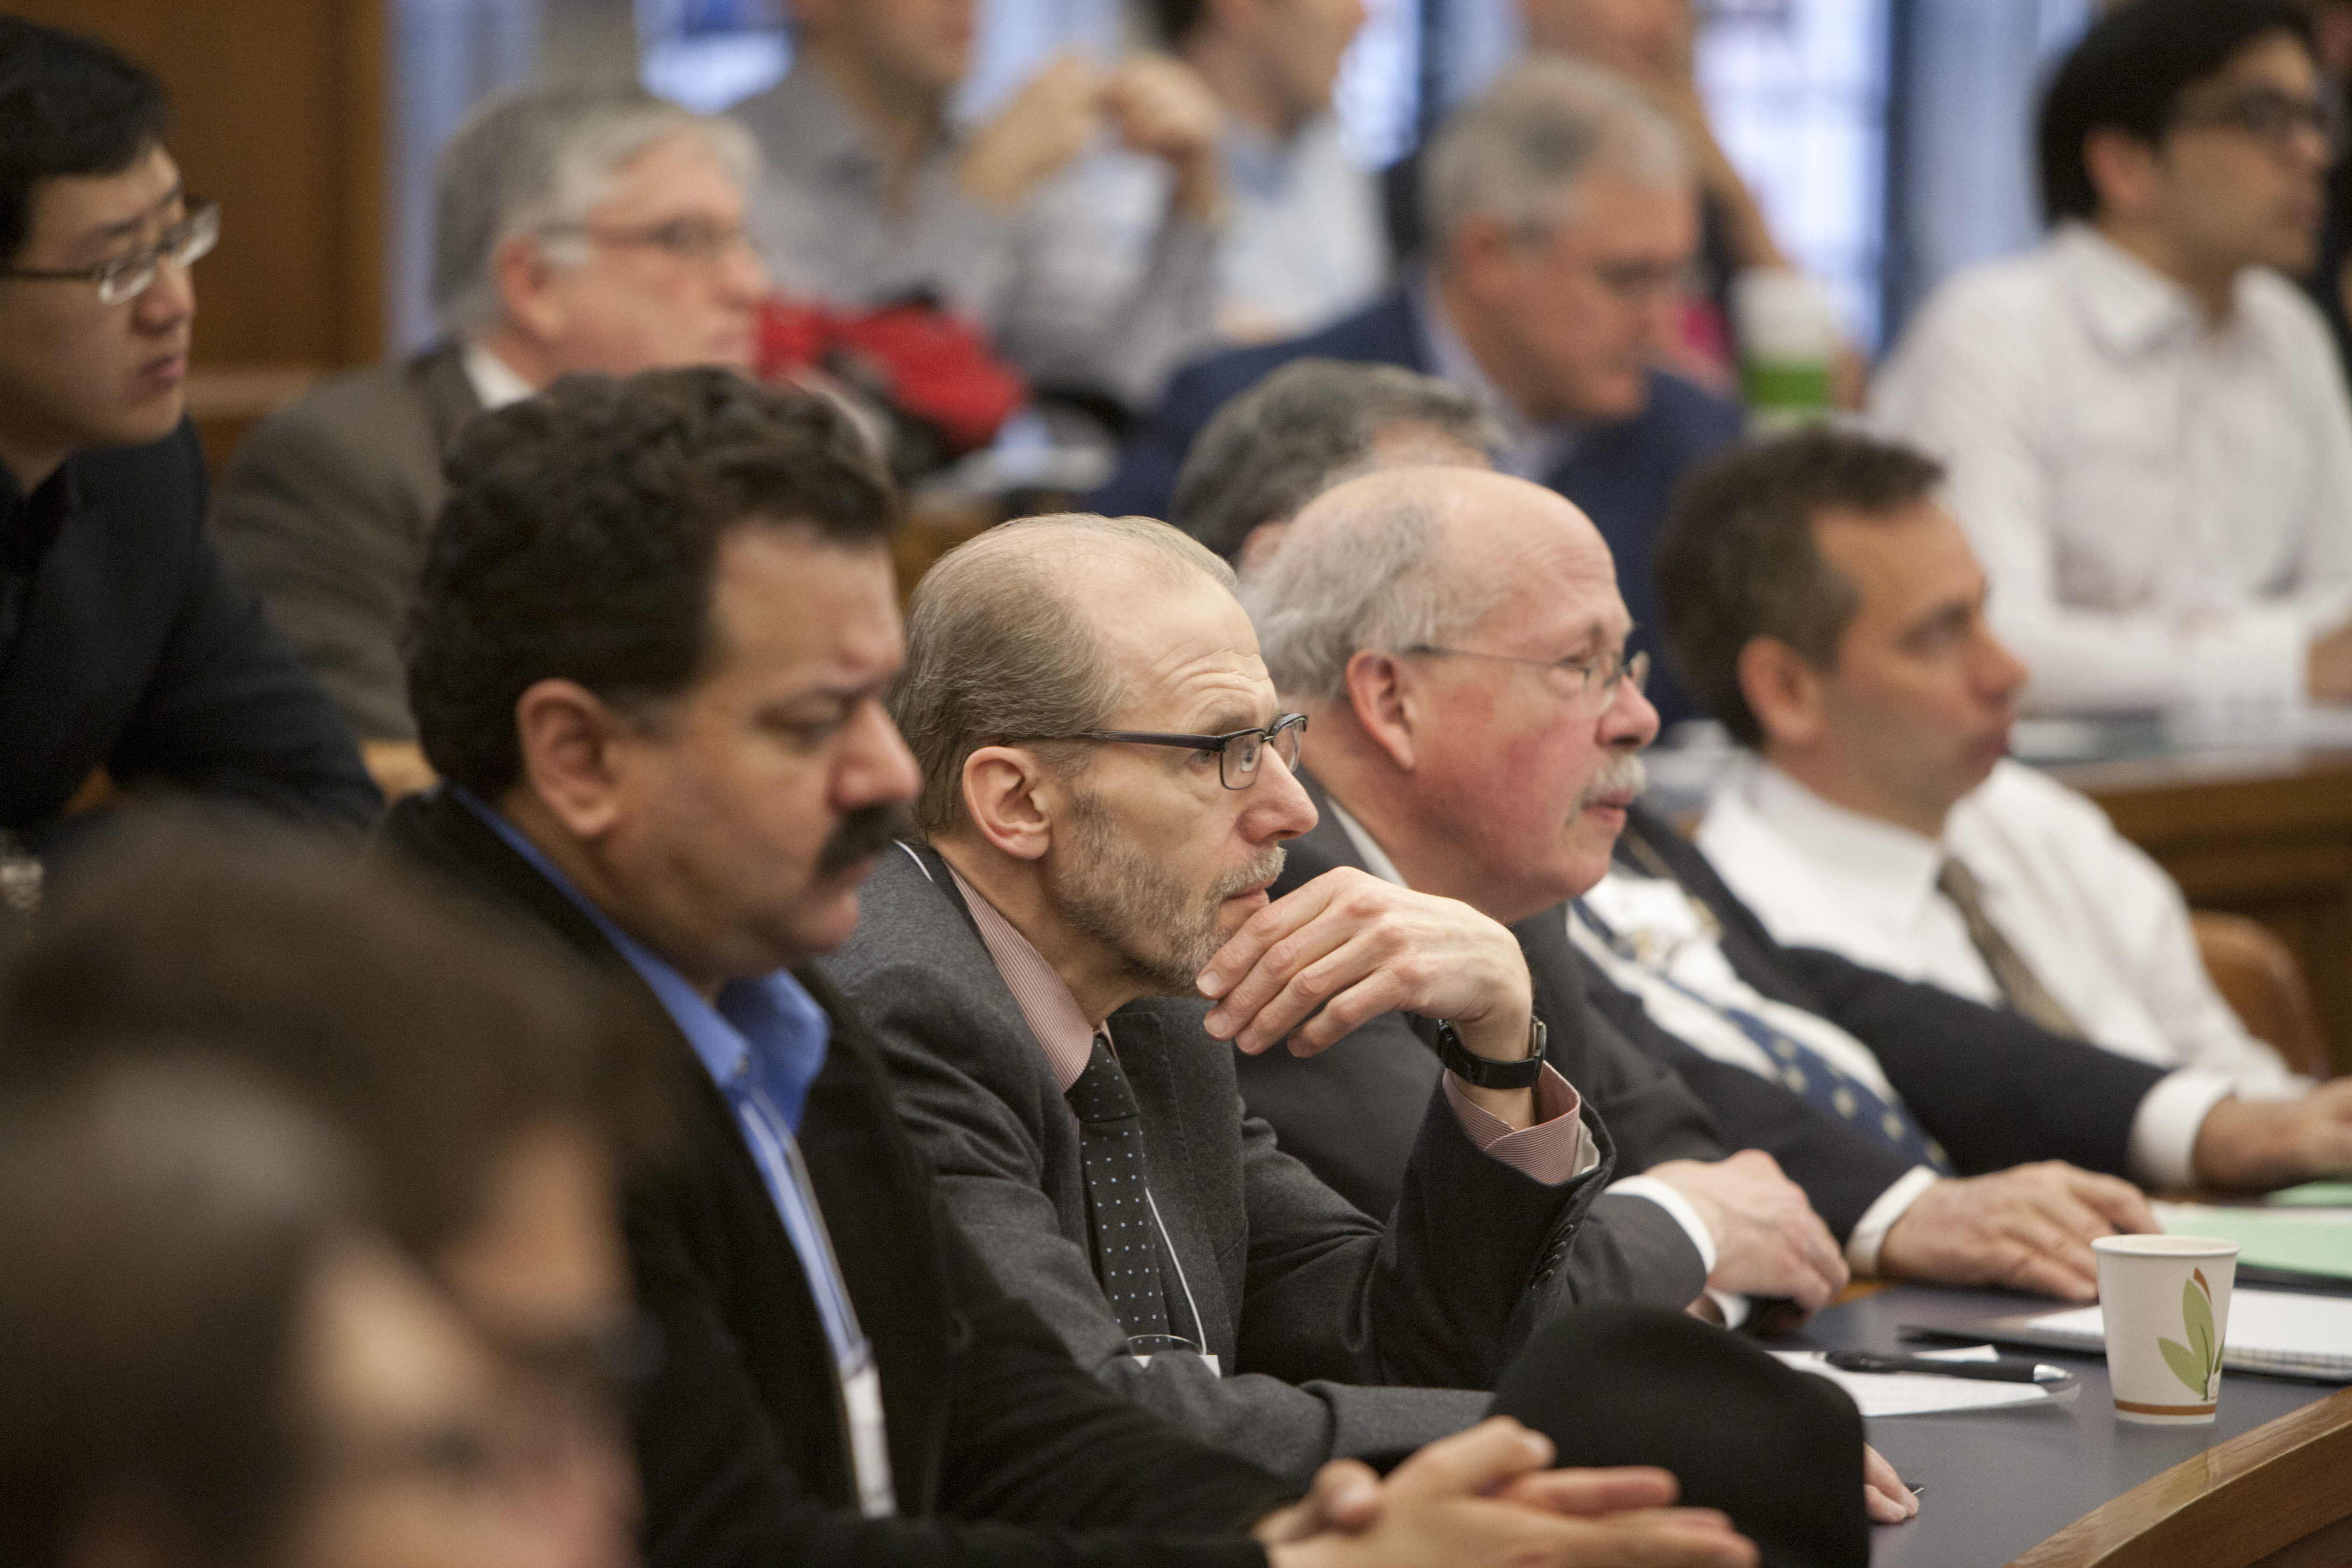 Audience at the 2011 Weil Roundtable